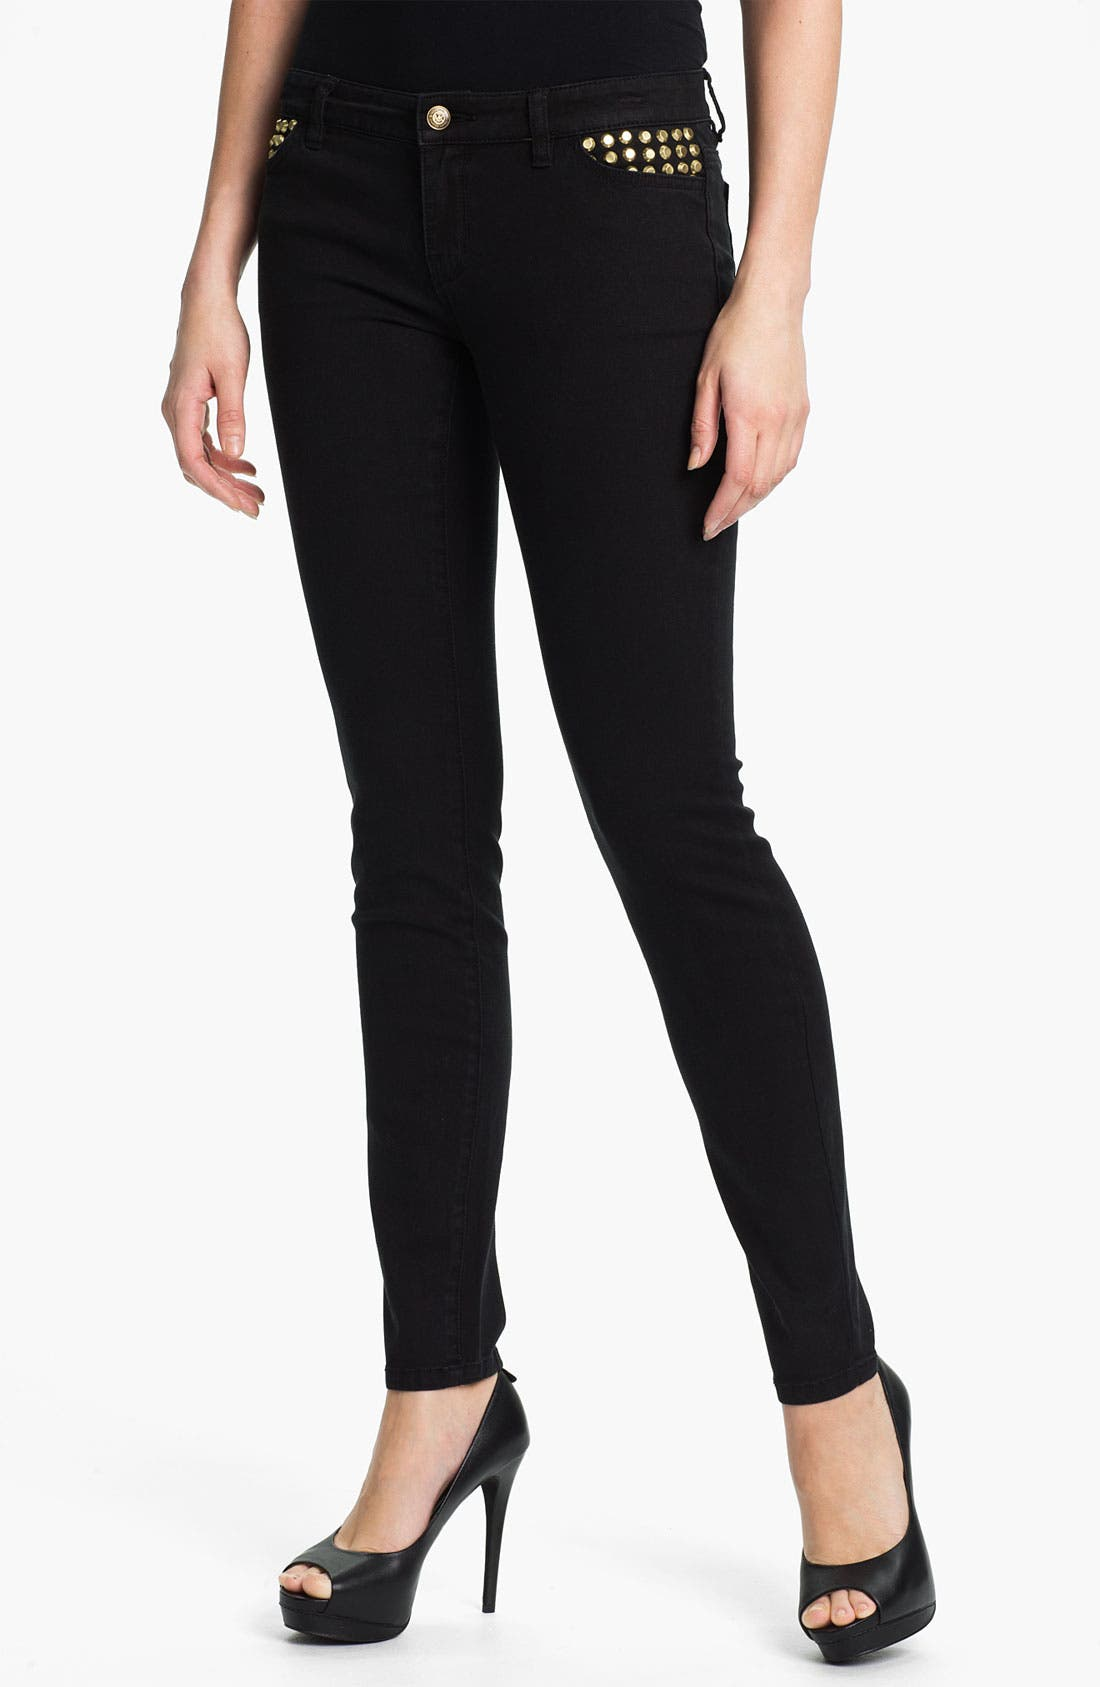 Main Image - MICHAEL Michael Kors 'Astor' Studded Denim Leggings